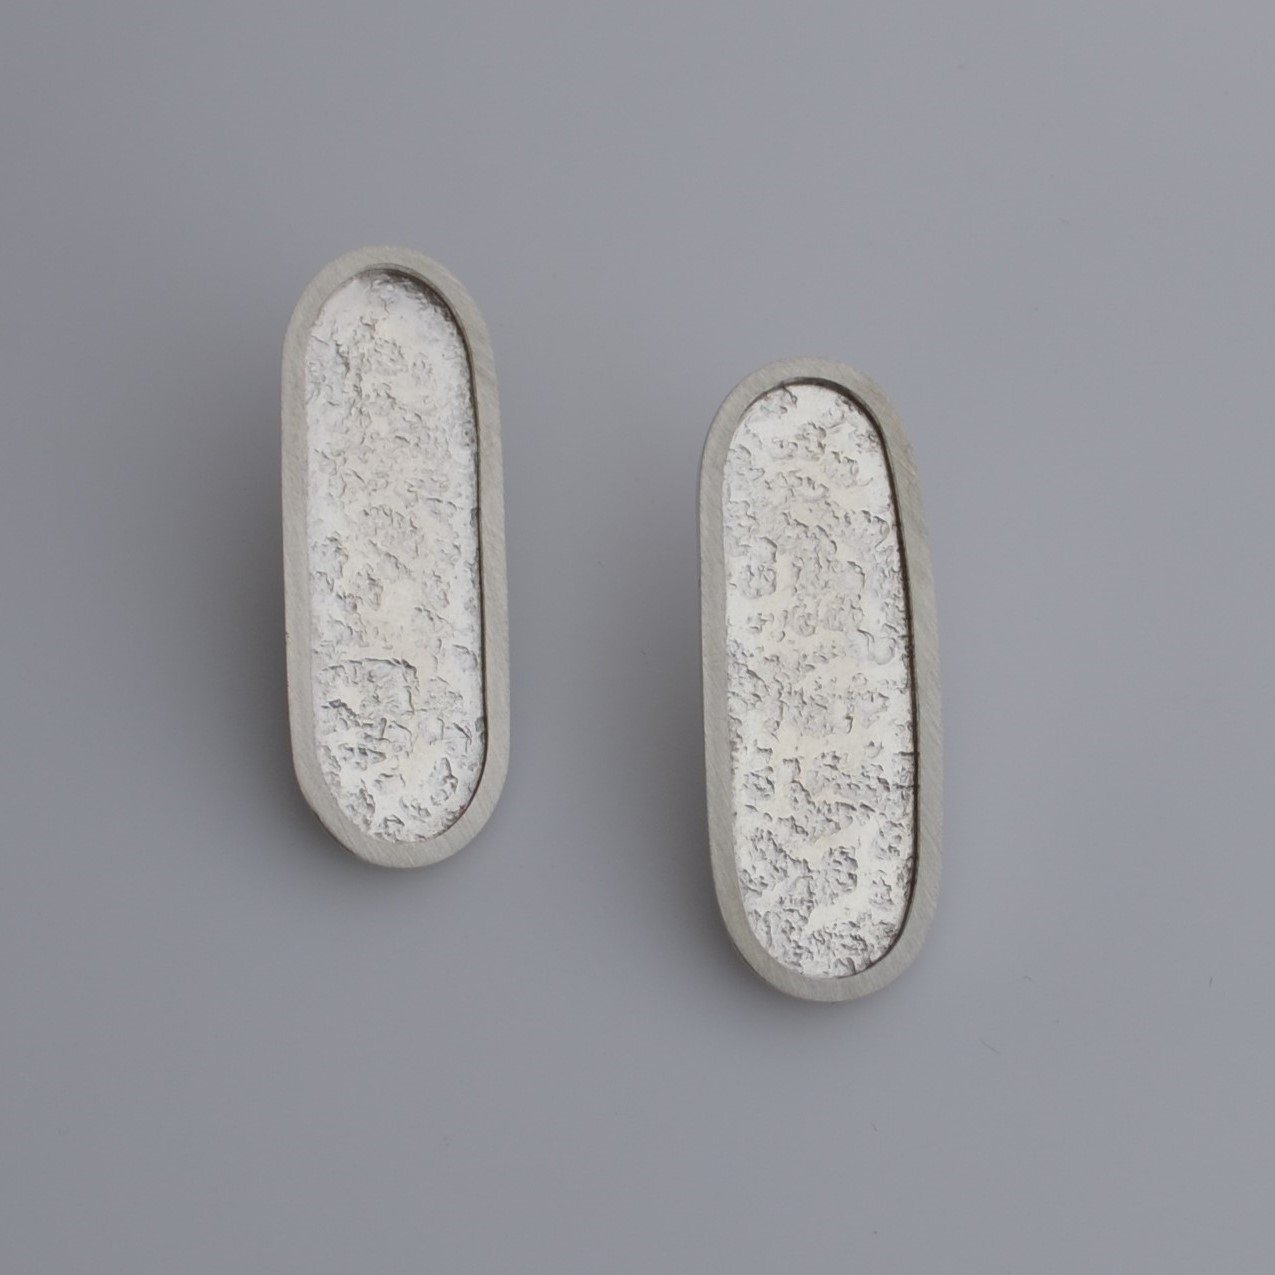 Silver Pill Post Earrings - Amalia Moon Jewelry